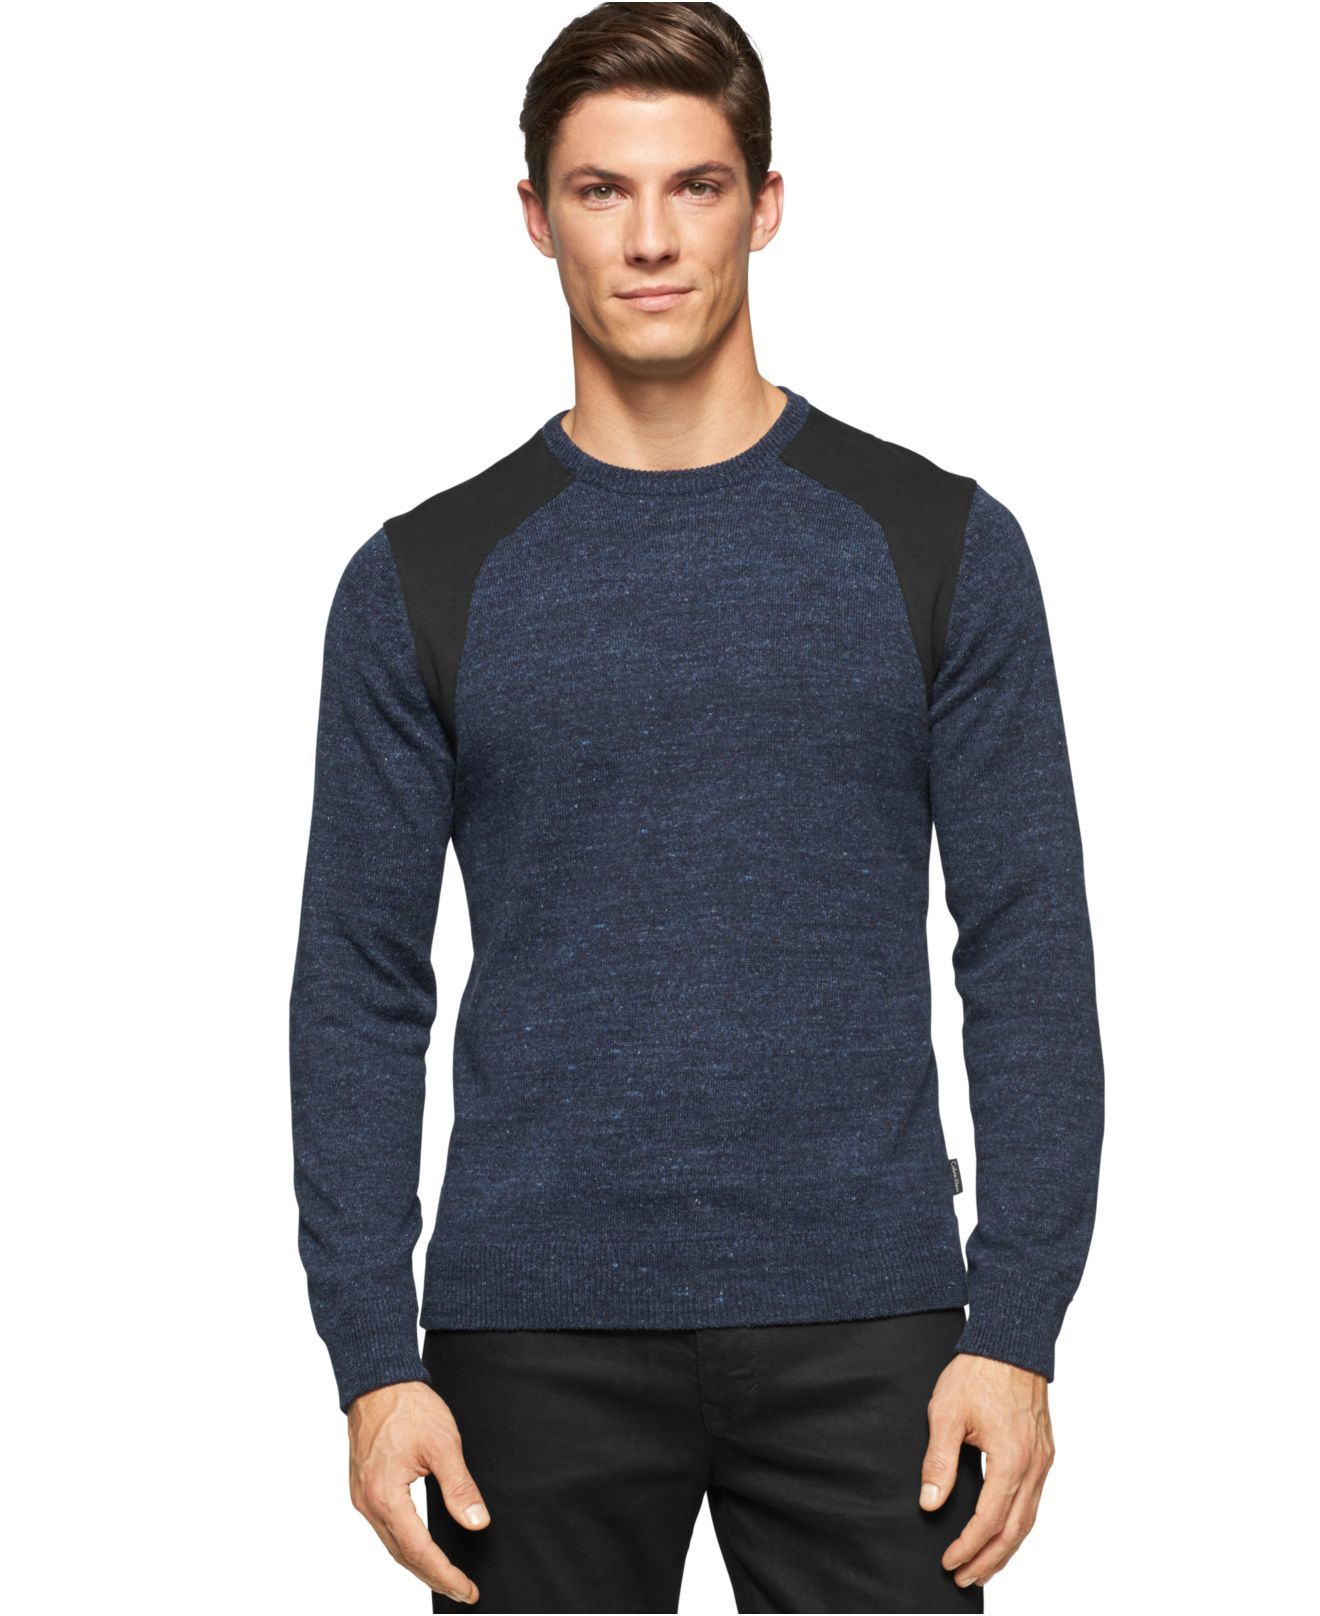 calvin klein heather ponte crew neck pullover in blue for men heather blue lyst. Black Bedroom Furniture Sets. Home Design Ideas